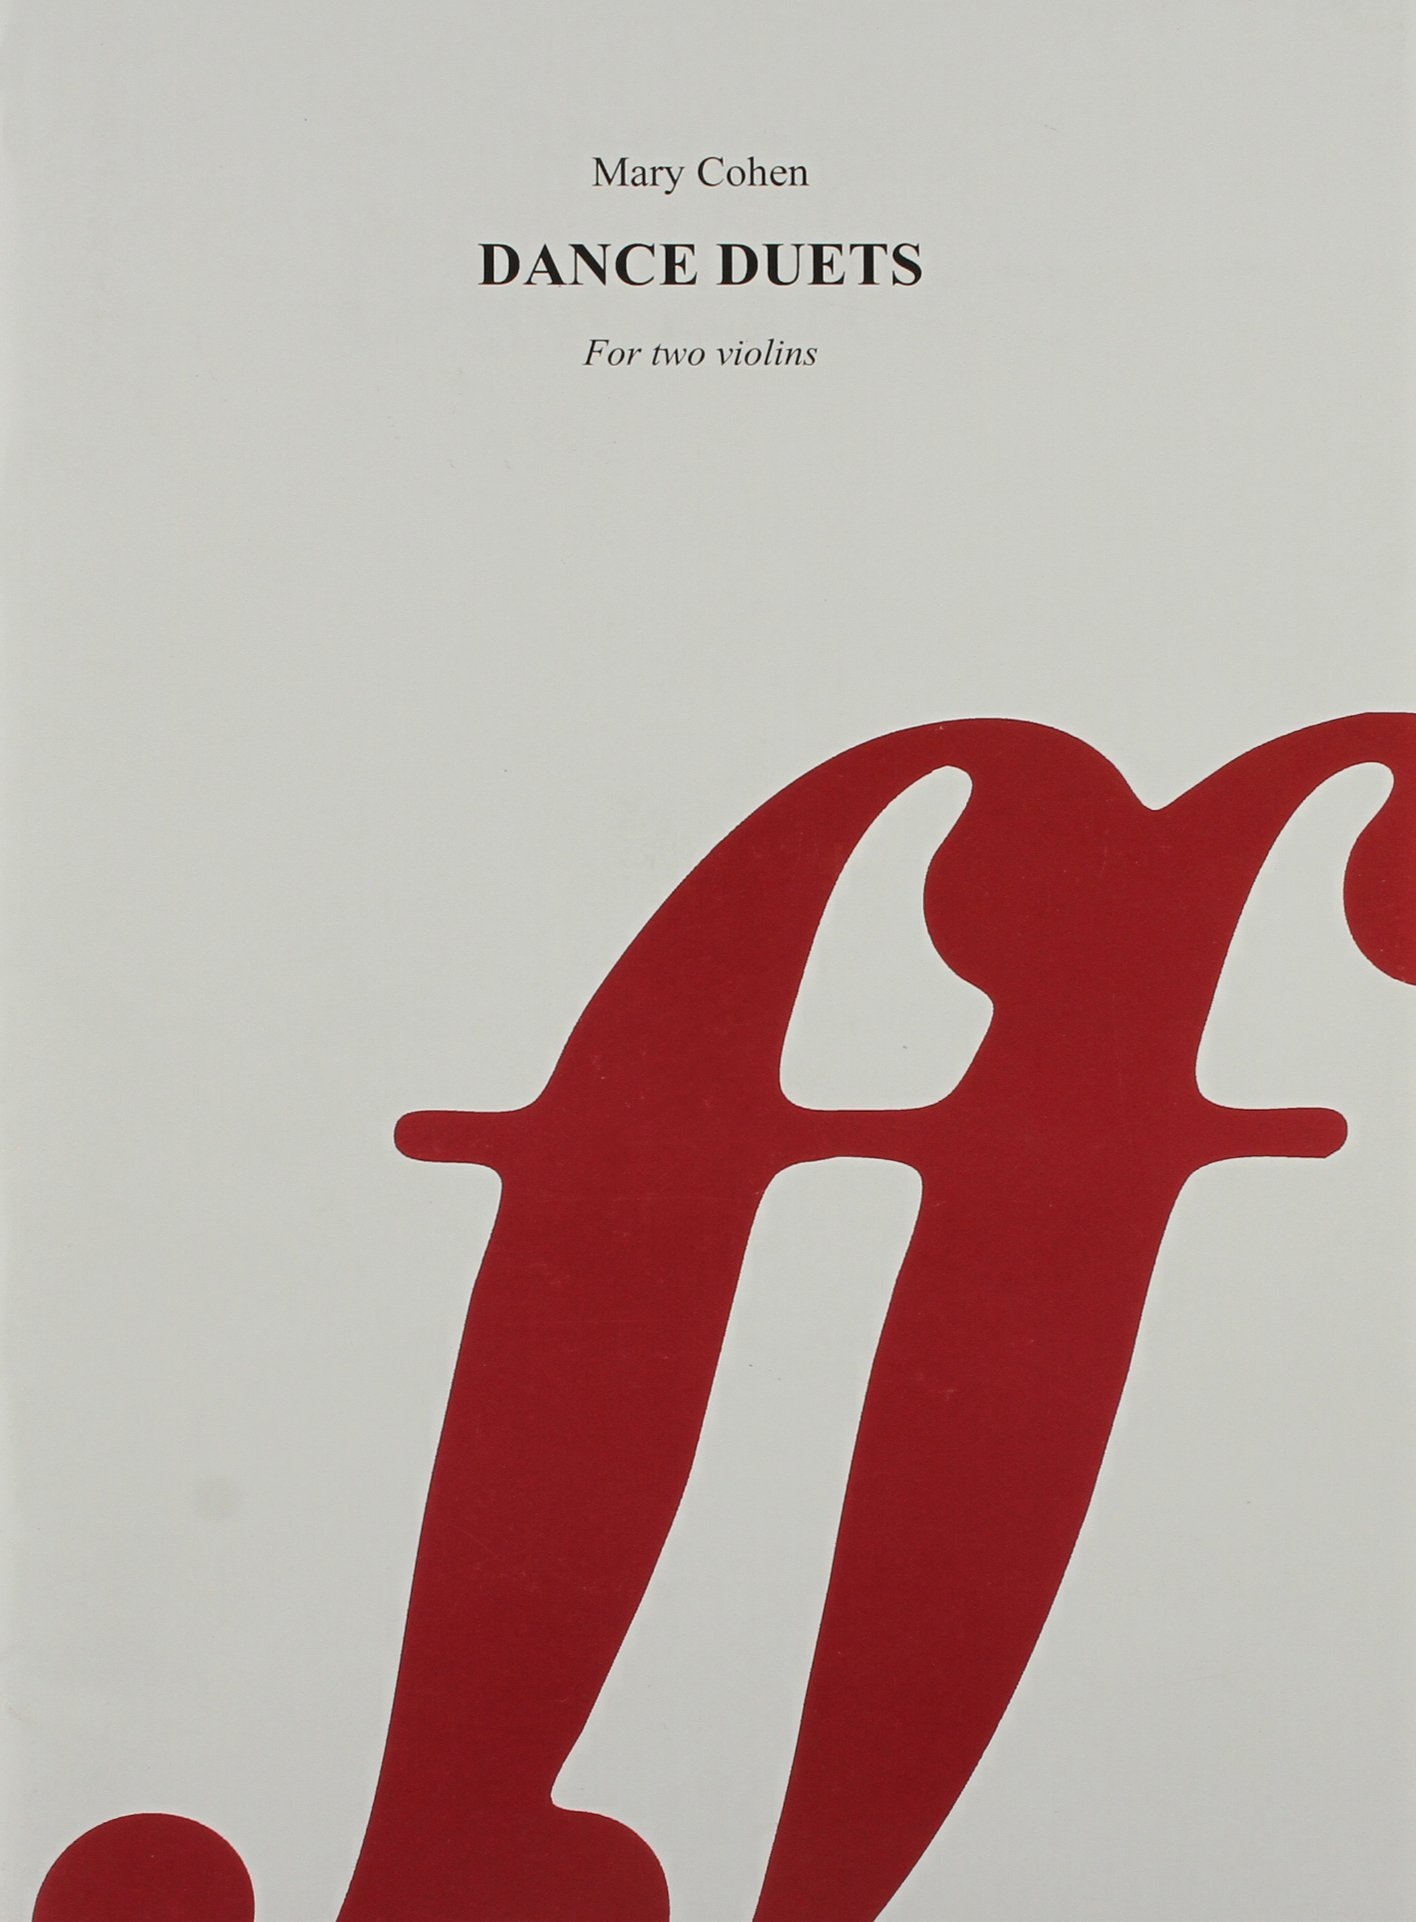 Dance Duets for Violin Duo (Faber Edition) PDF